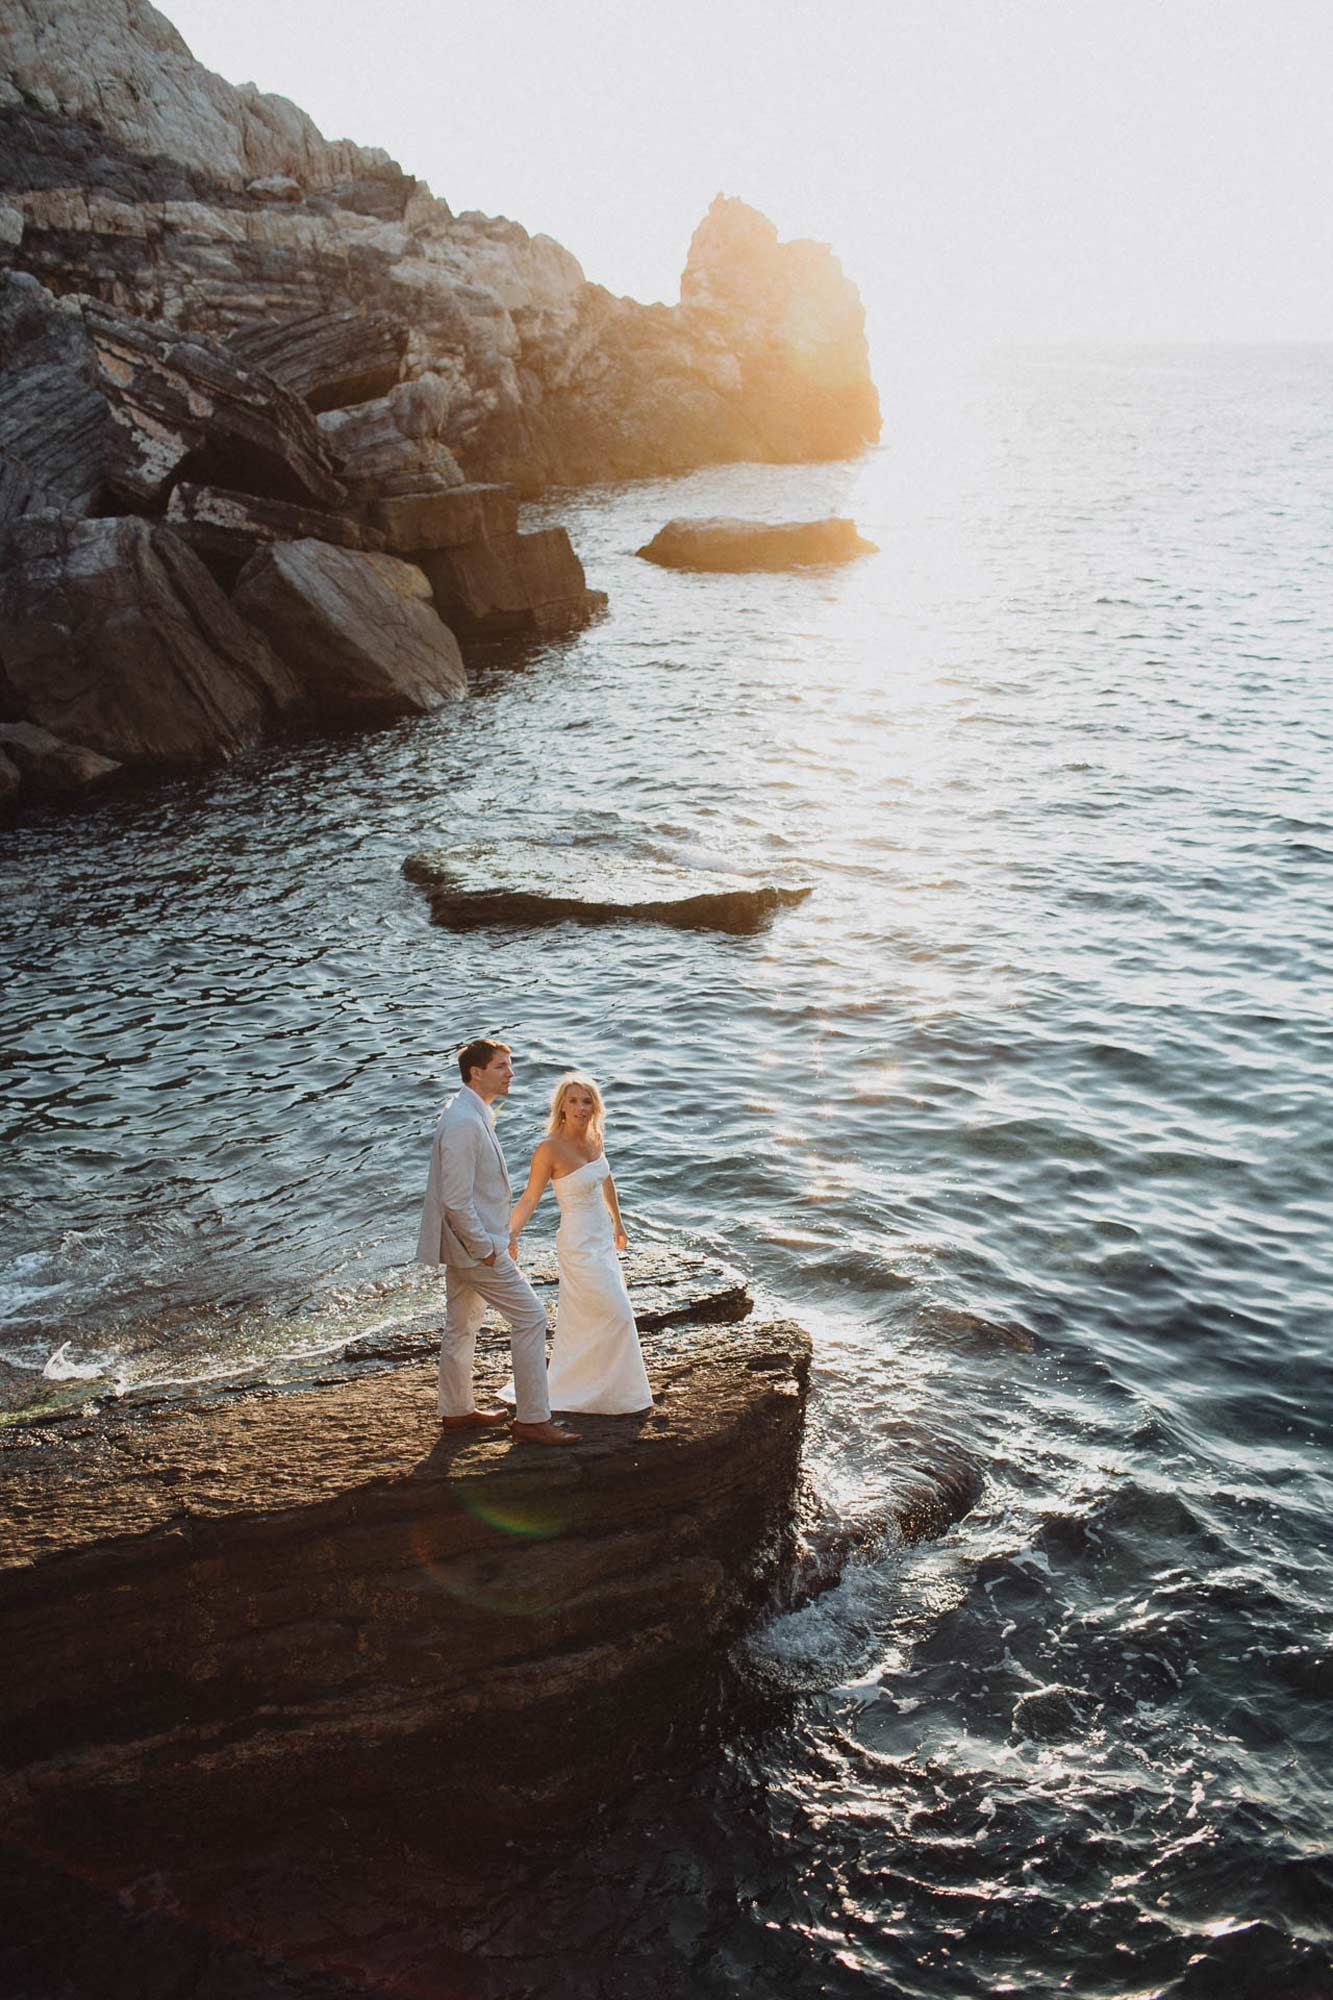 Destination Italy Elopement Photography - Mediterranean Sea Coast